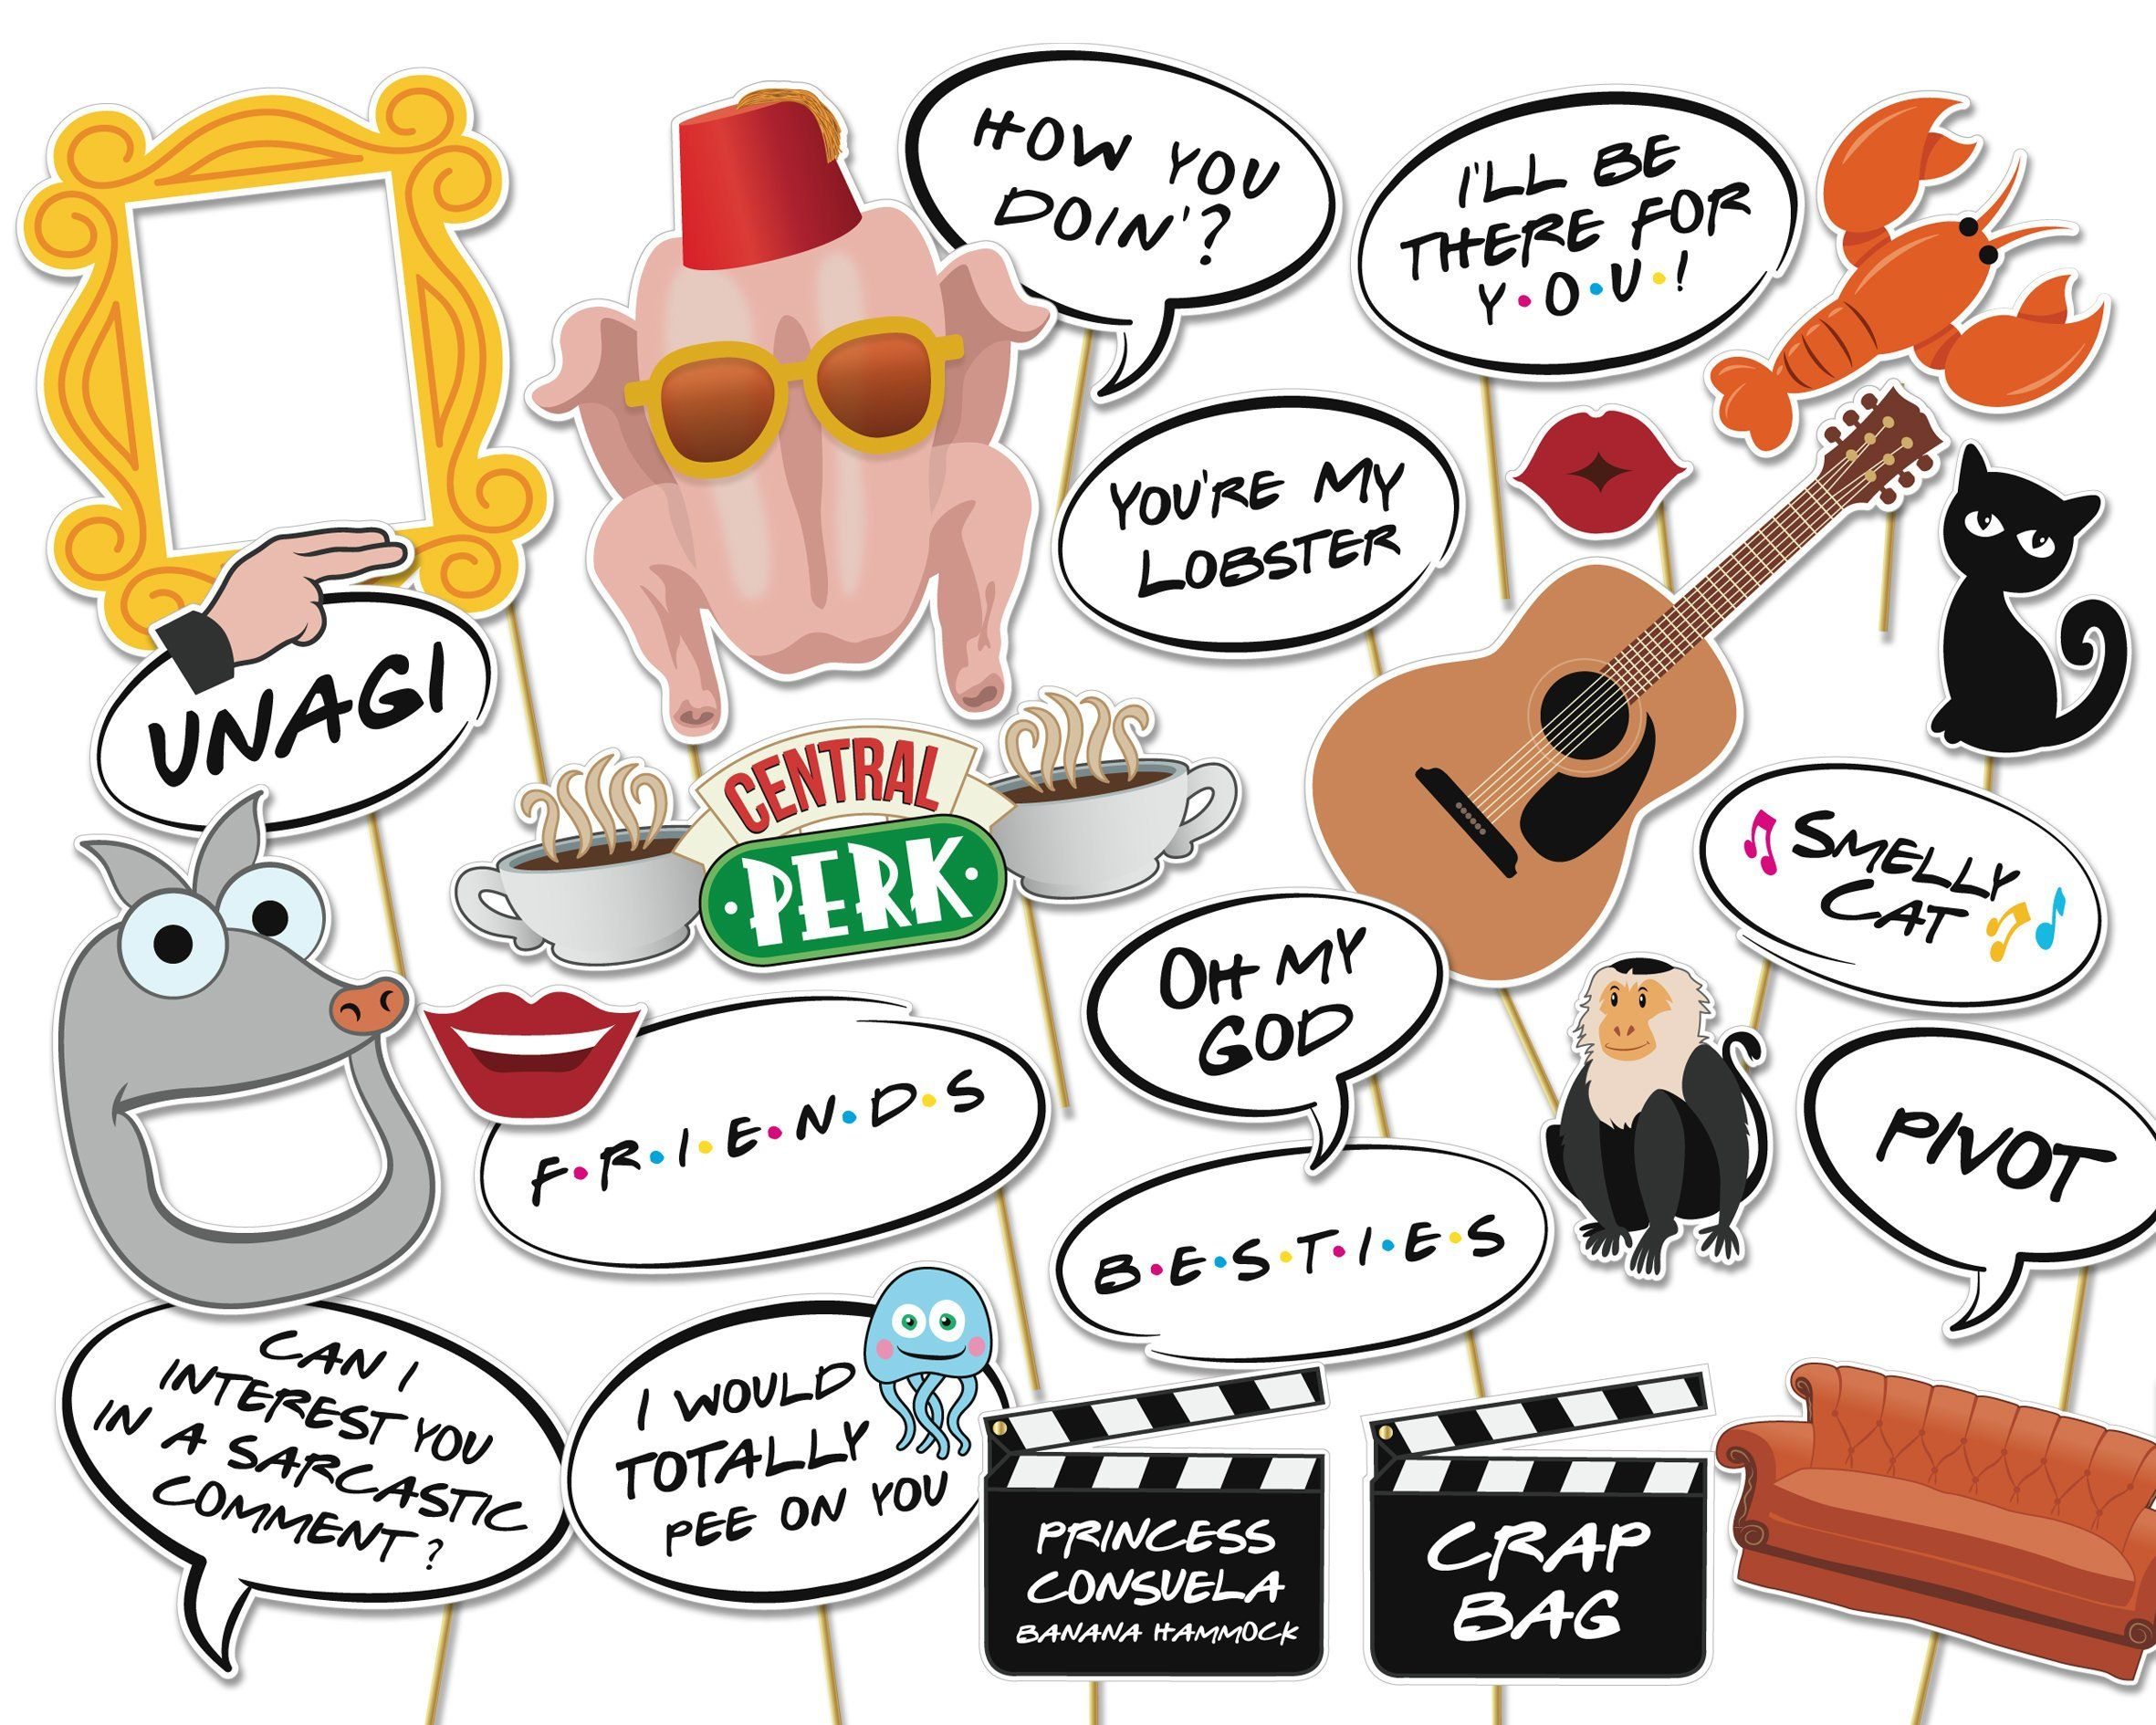 Friends Tv Photo Booth Printable Props Based On Friends -9140